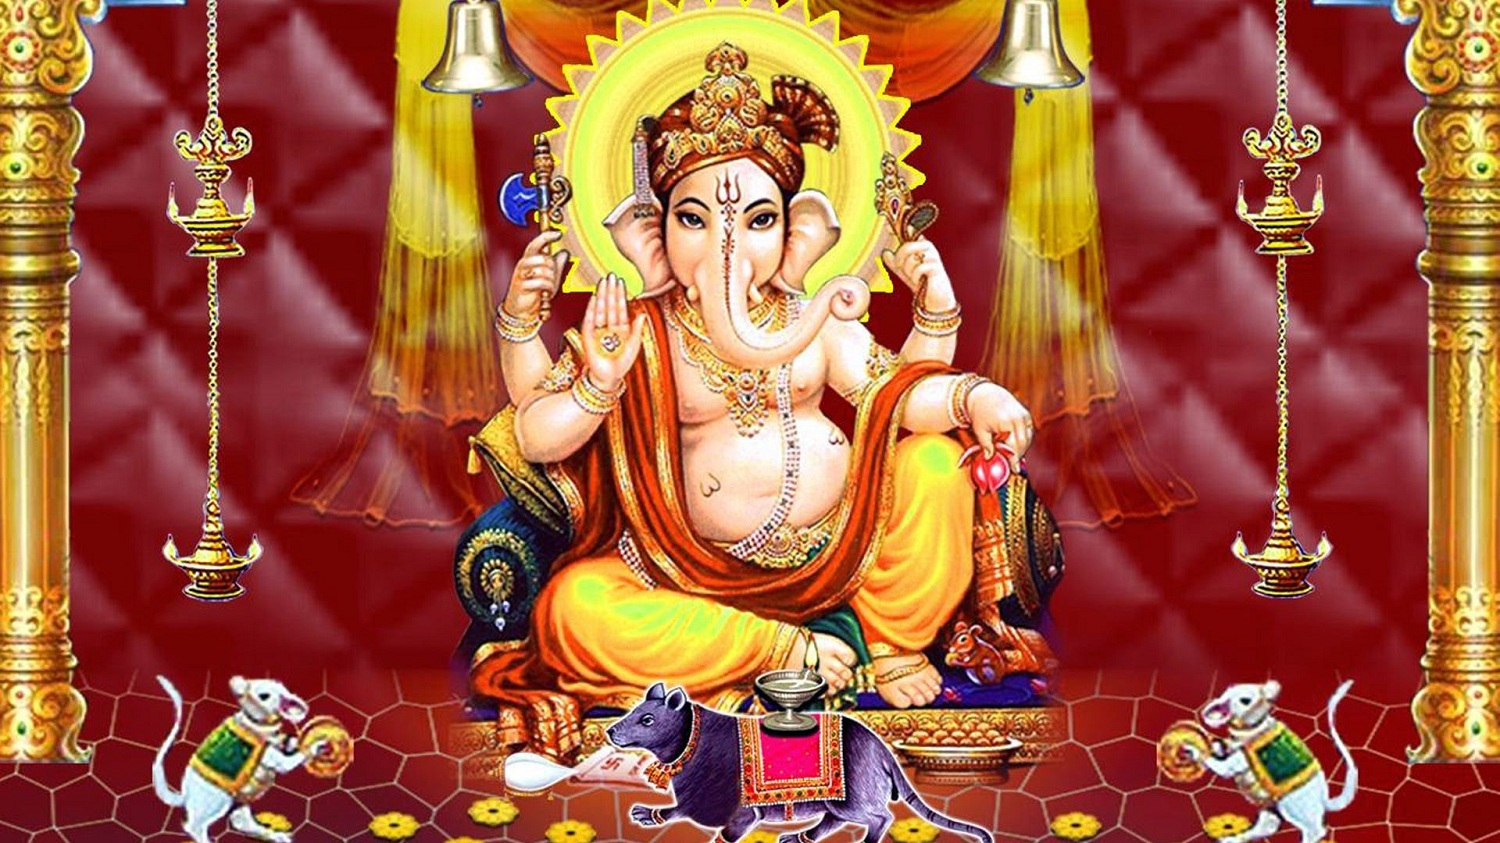 Download - Ganesh Chaturthi Wallpapers_8